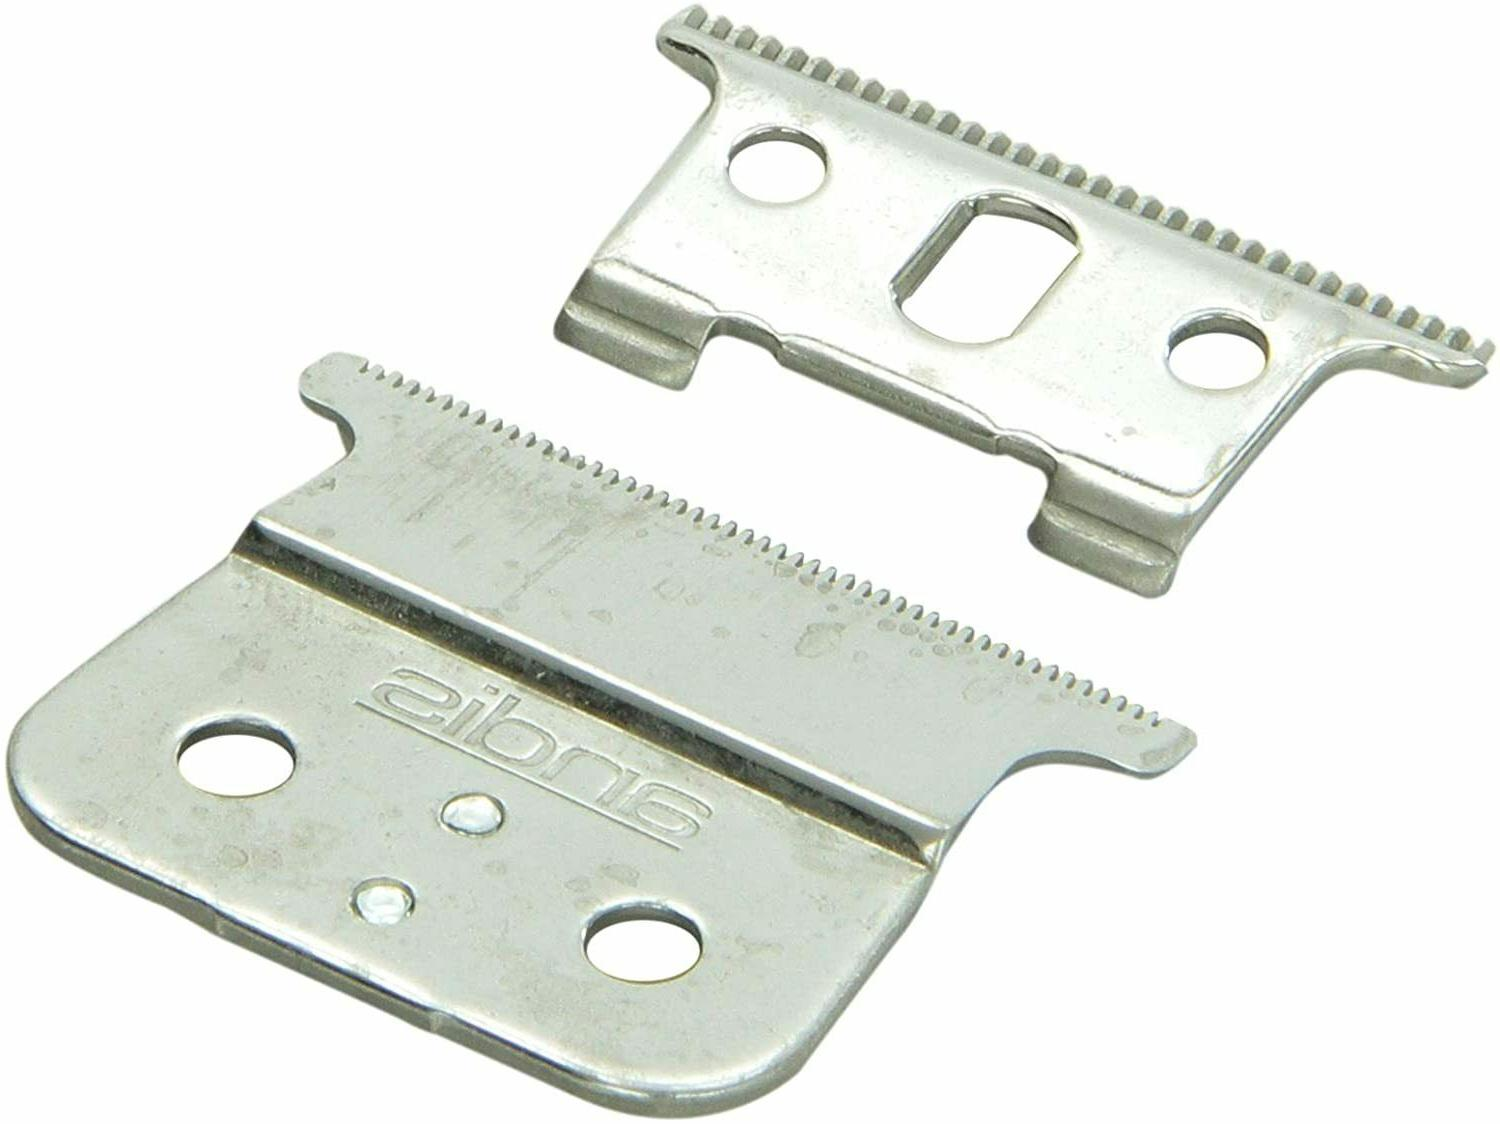 Andis 04521 Replacement T-Blade For T-Outliner Trimmer